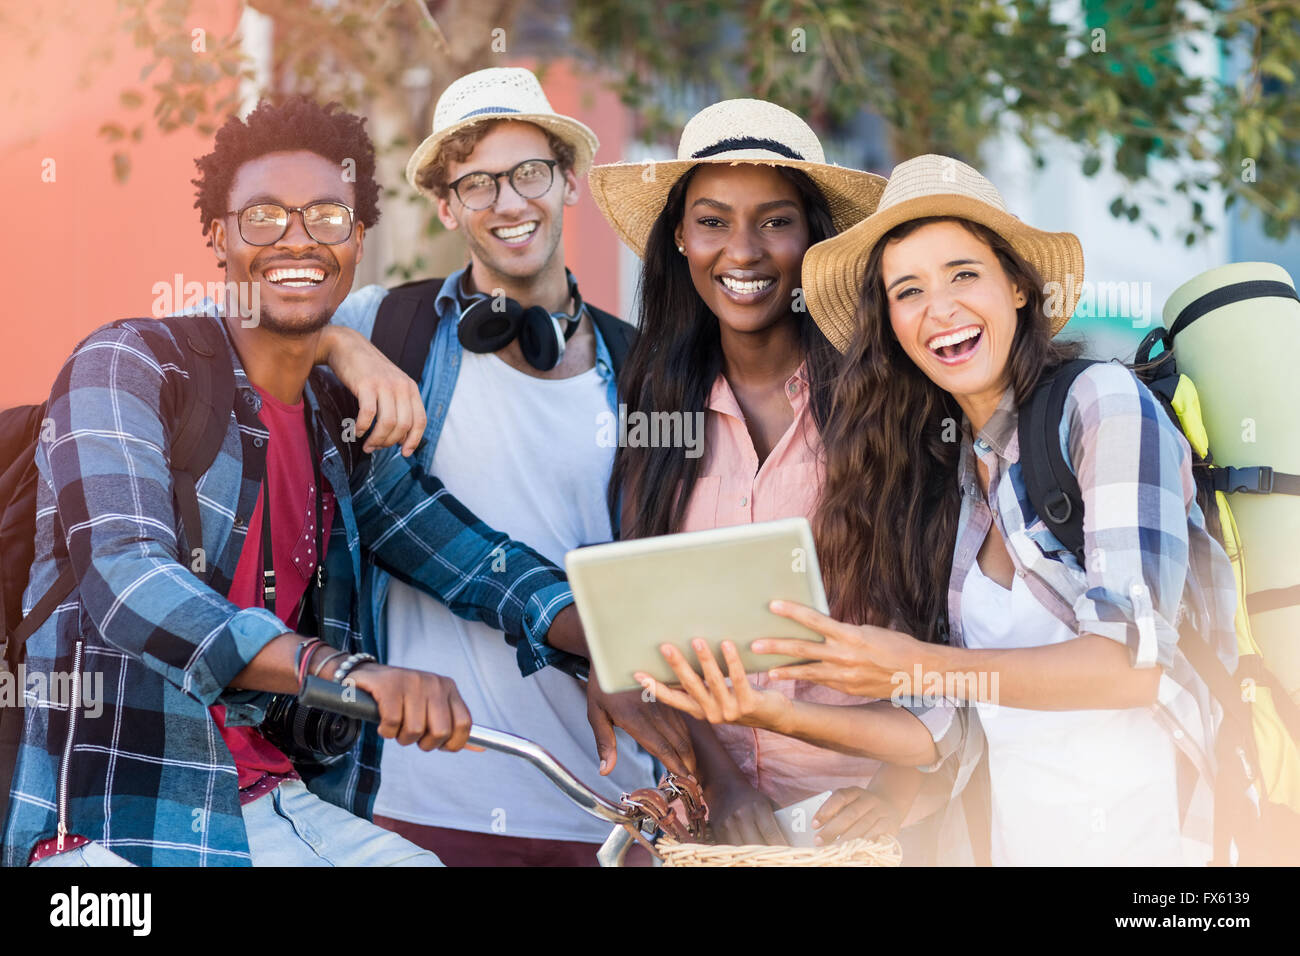 Friends using digital tablet - Stock Image